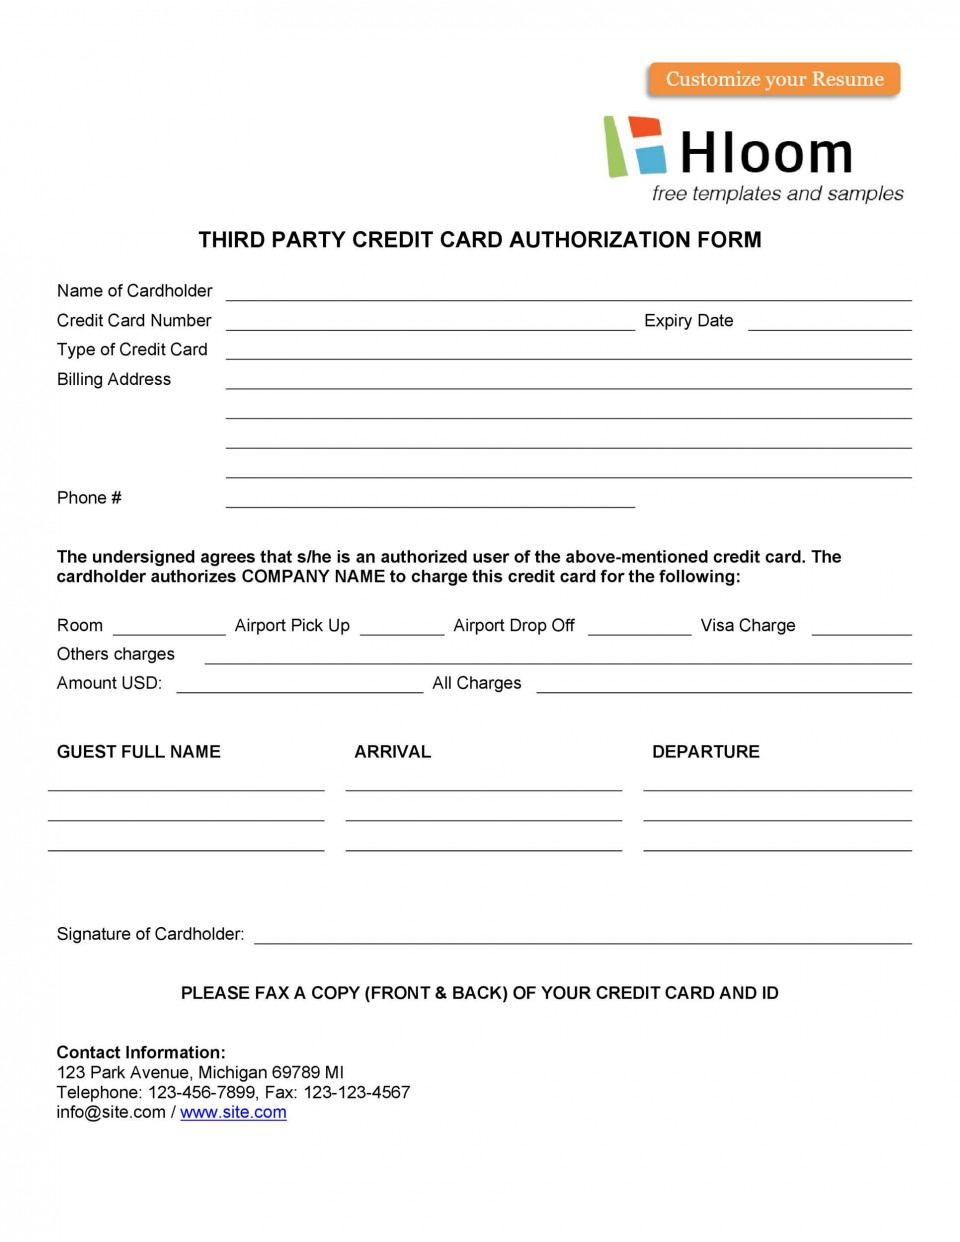 007 Unbelievable Credit Card Usage Request Form Template Sample 960